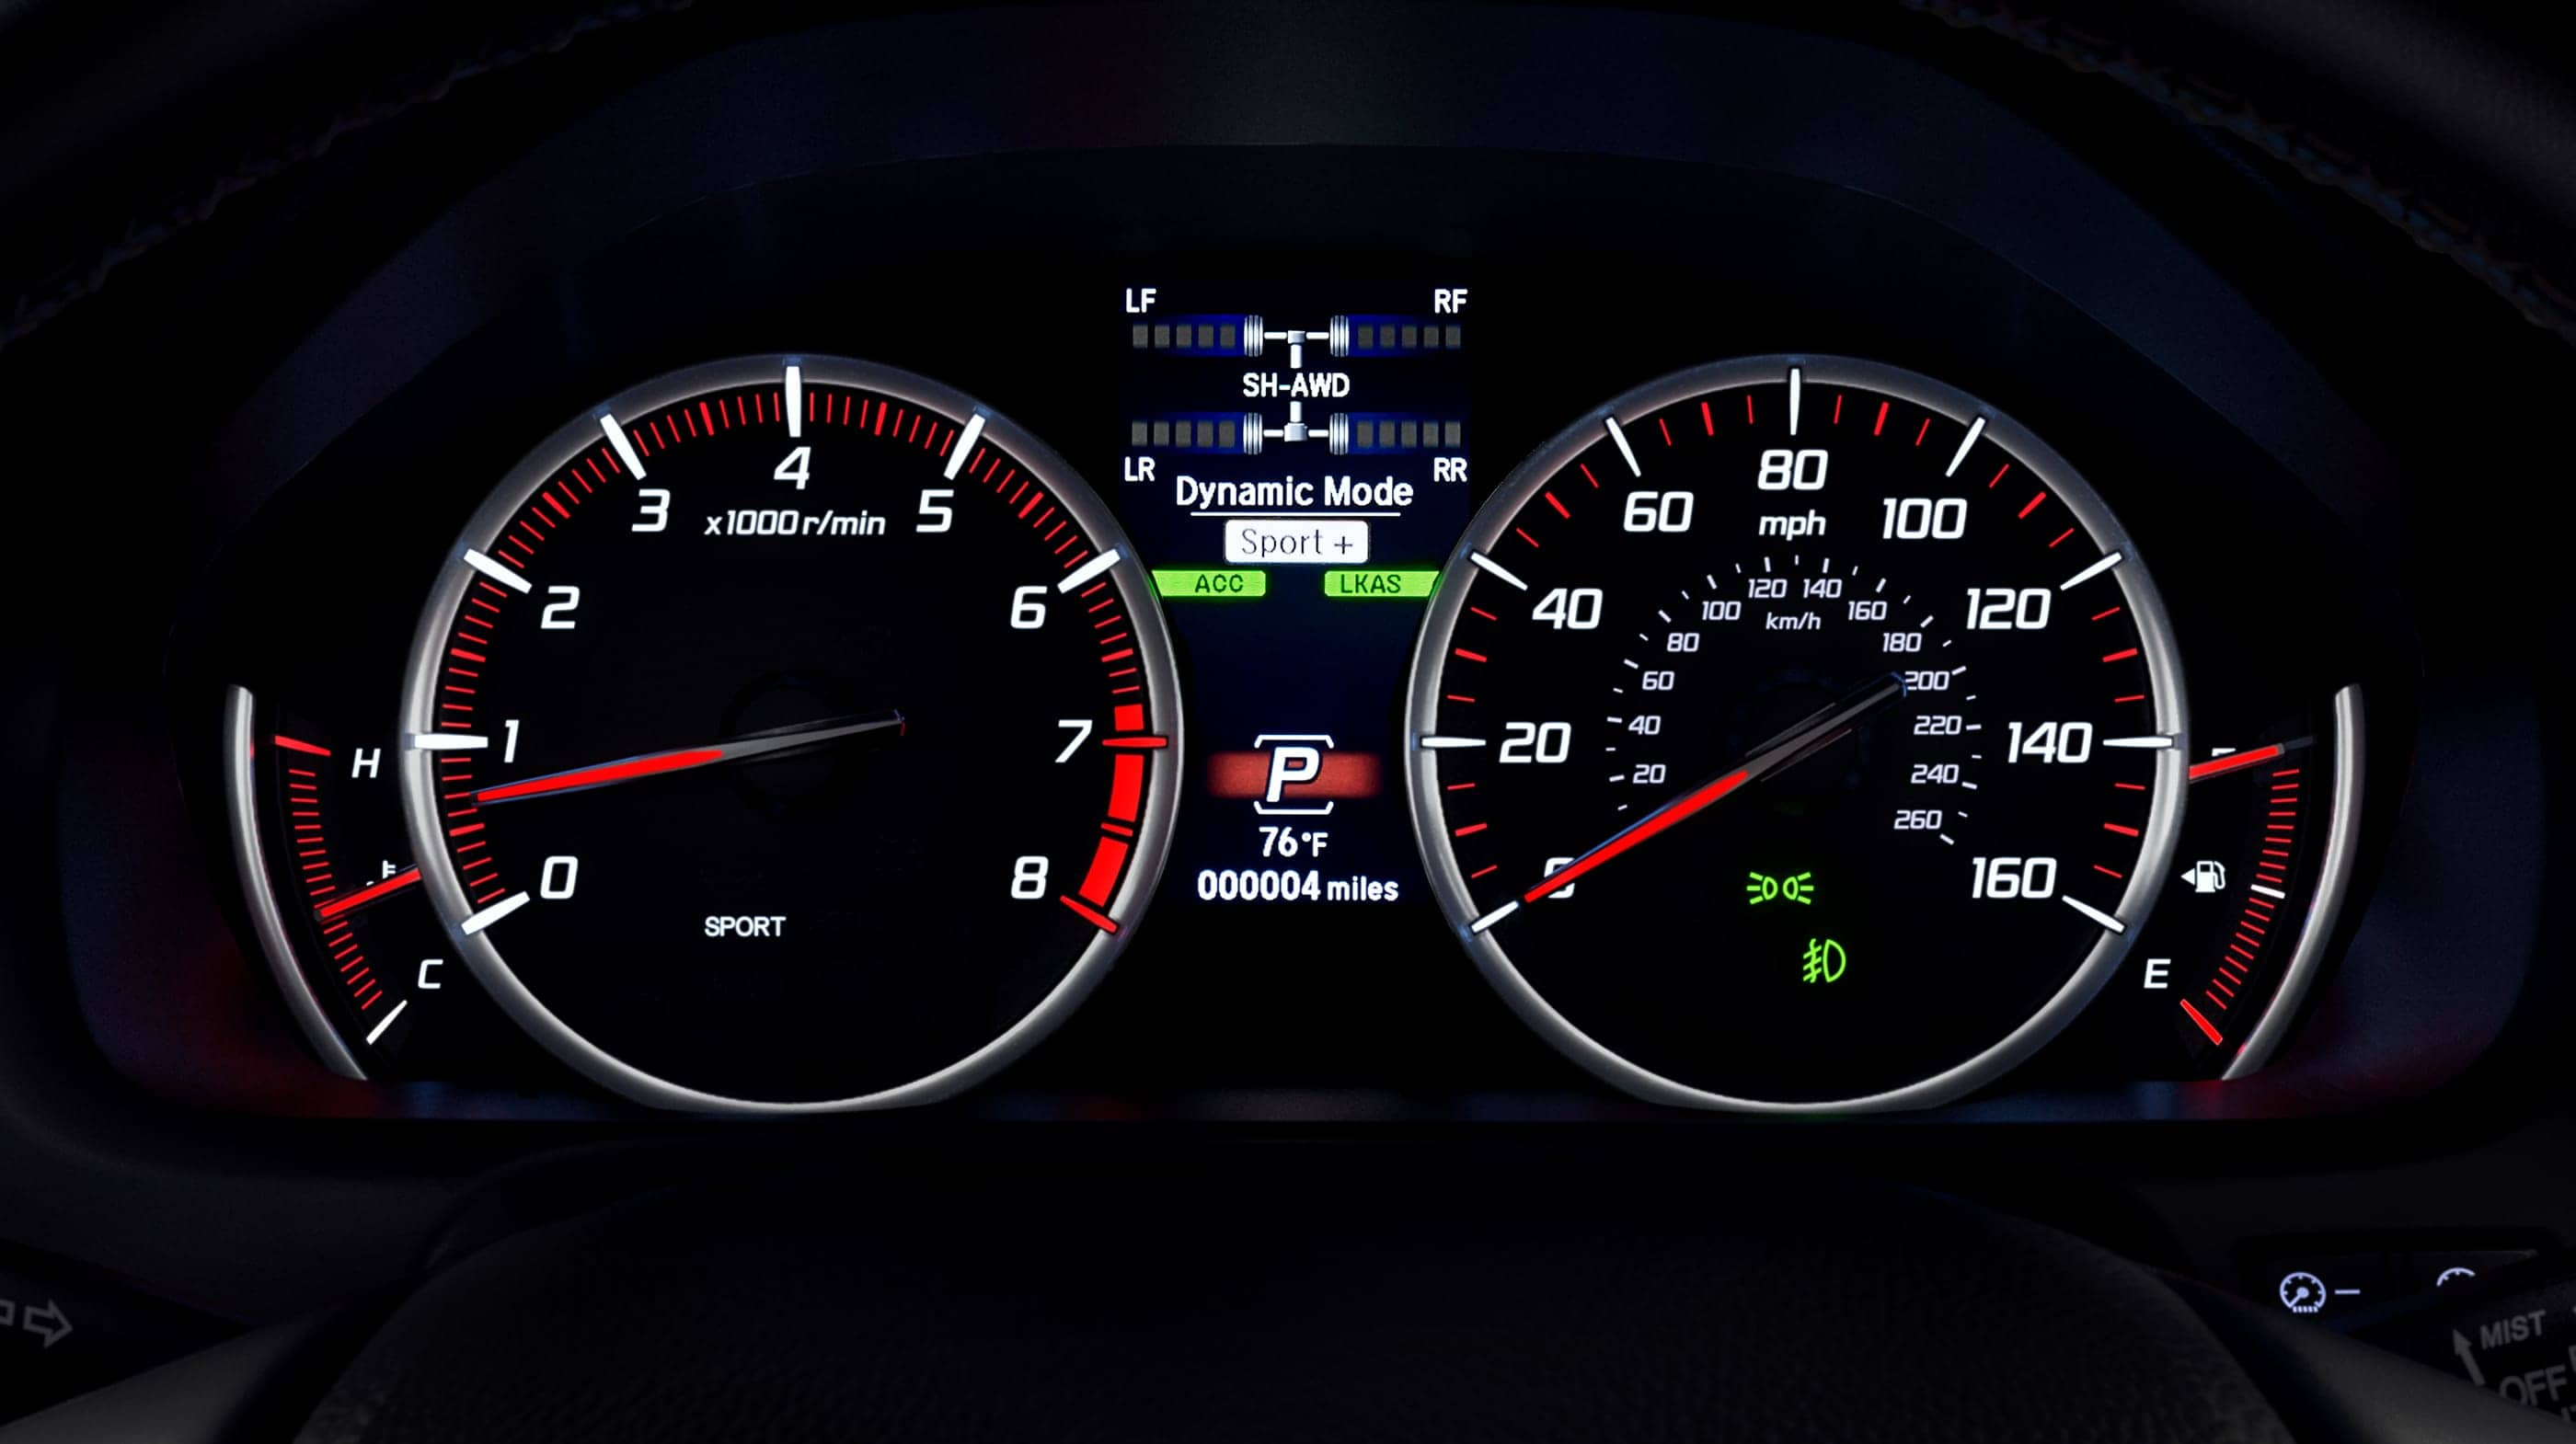 2020 TLX Instrument Cluster